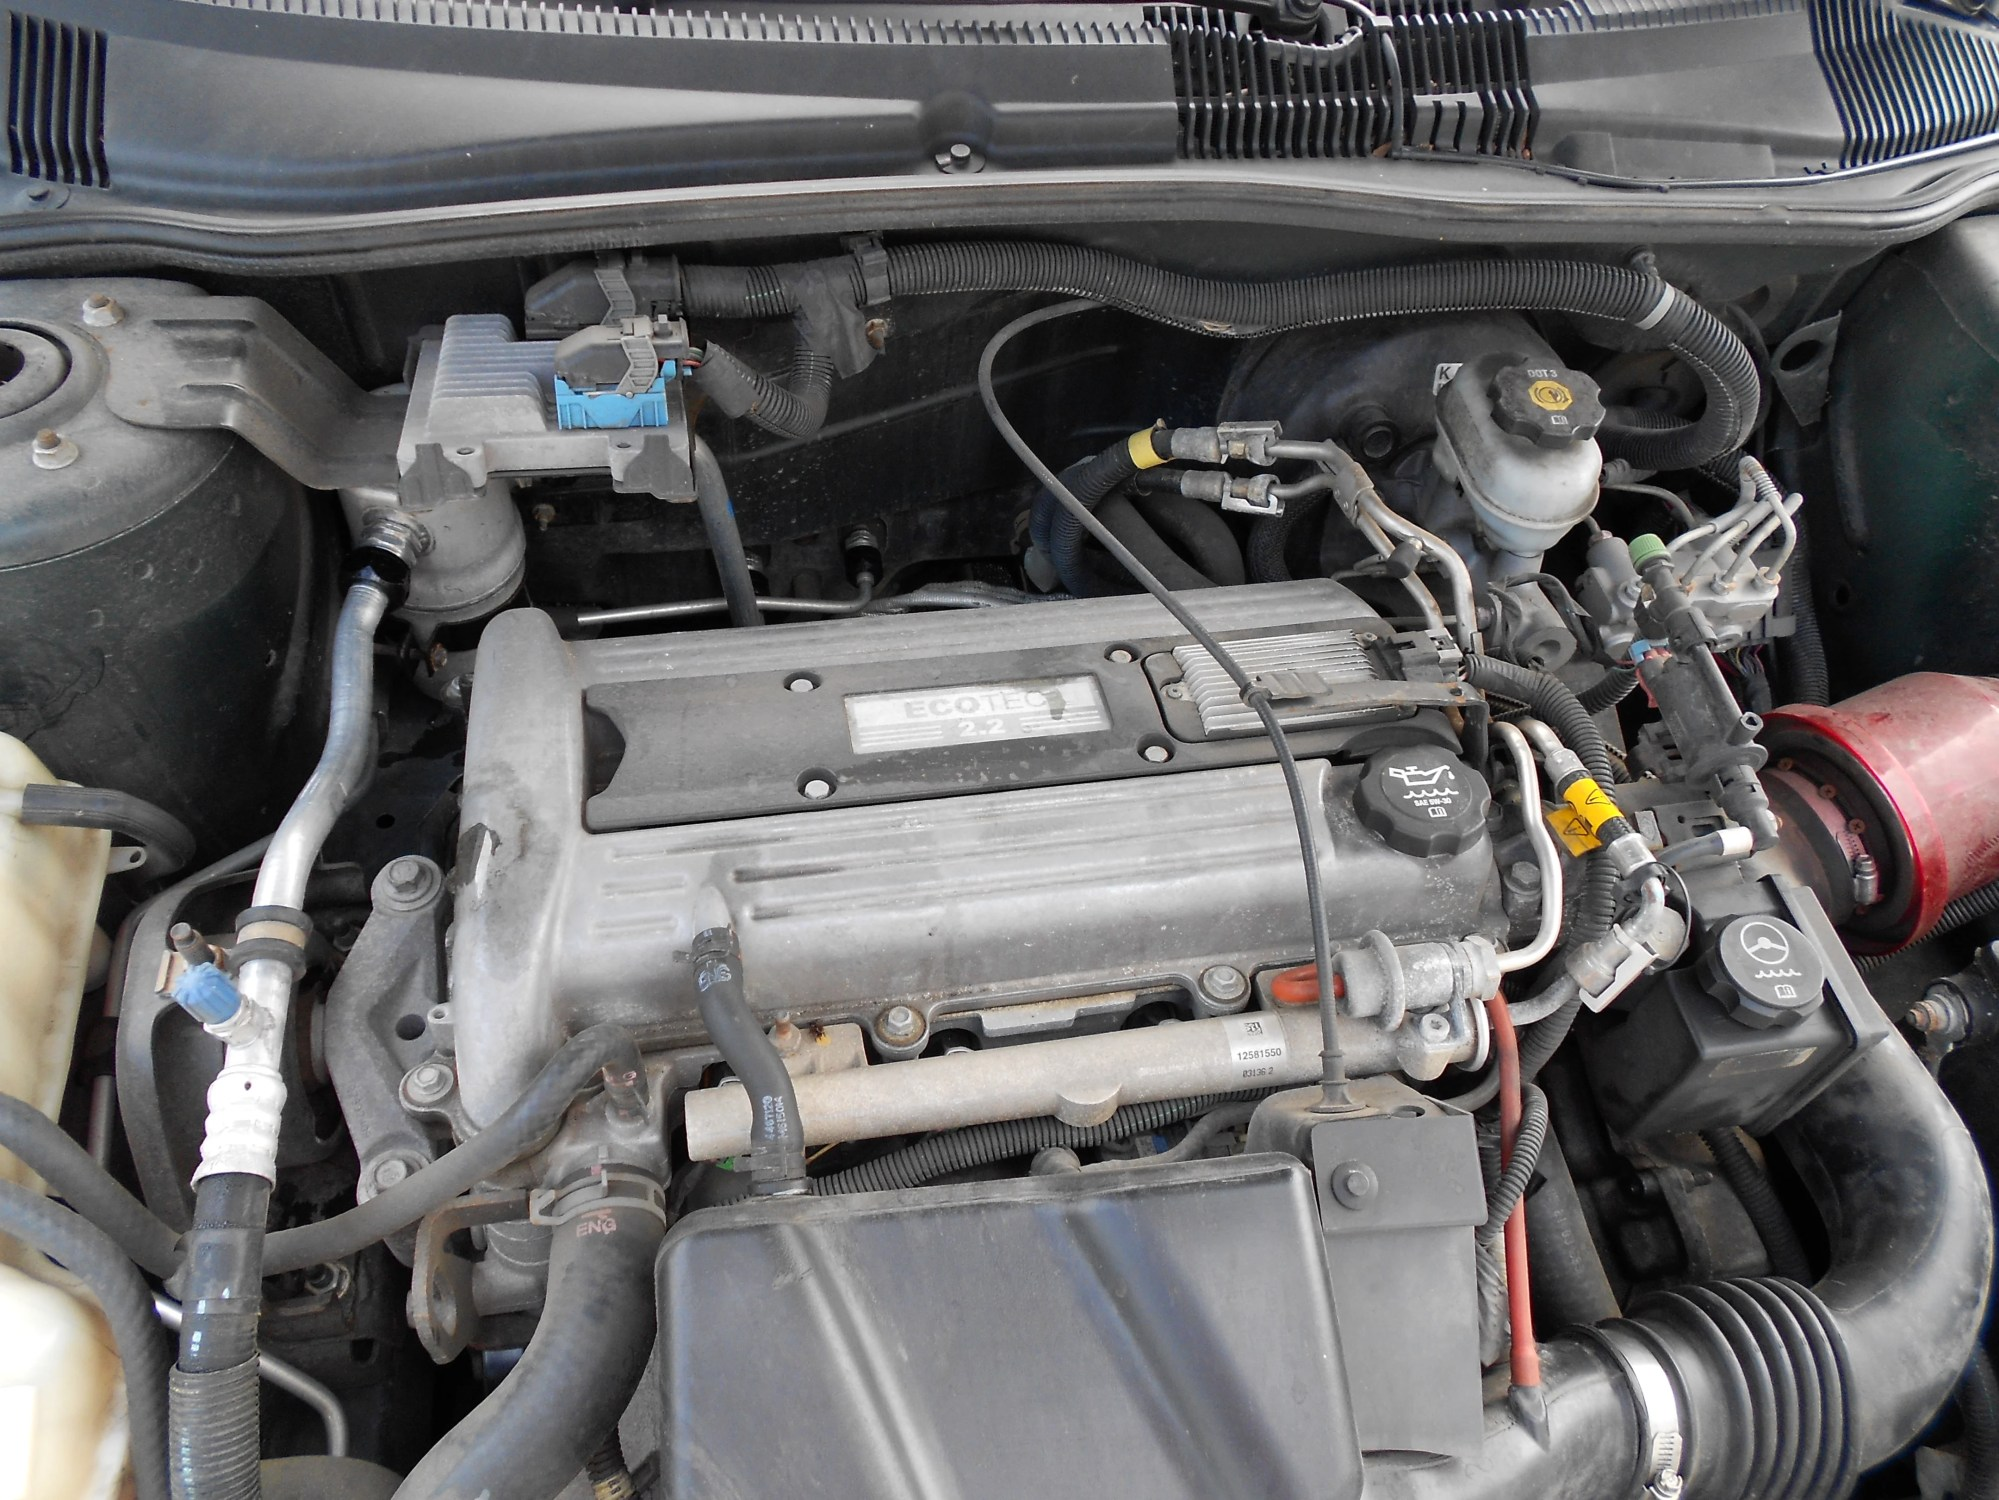 hight resolution of diagram as well 2000 chevy cavalier 2 4 engine likewise 2004 chevy chevy malibu thermostat location on chevy corsica 2 2l engine diagram